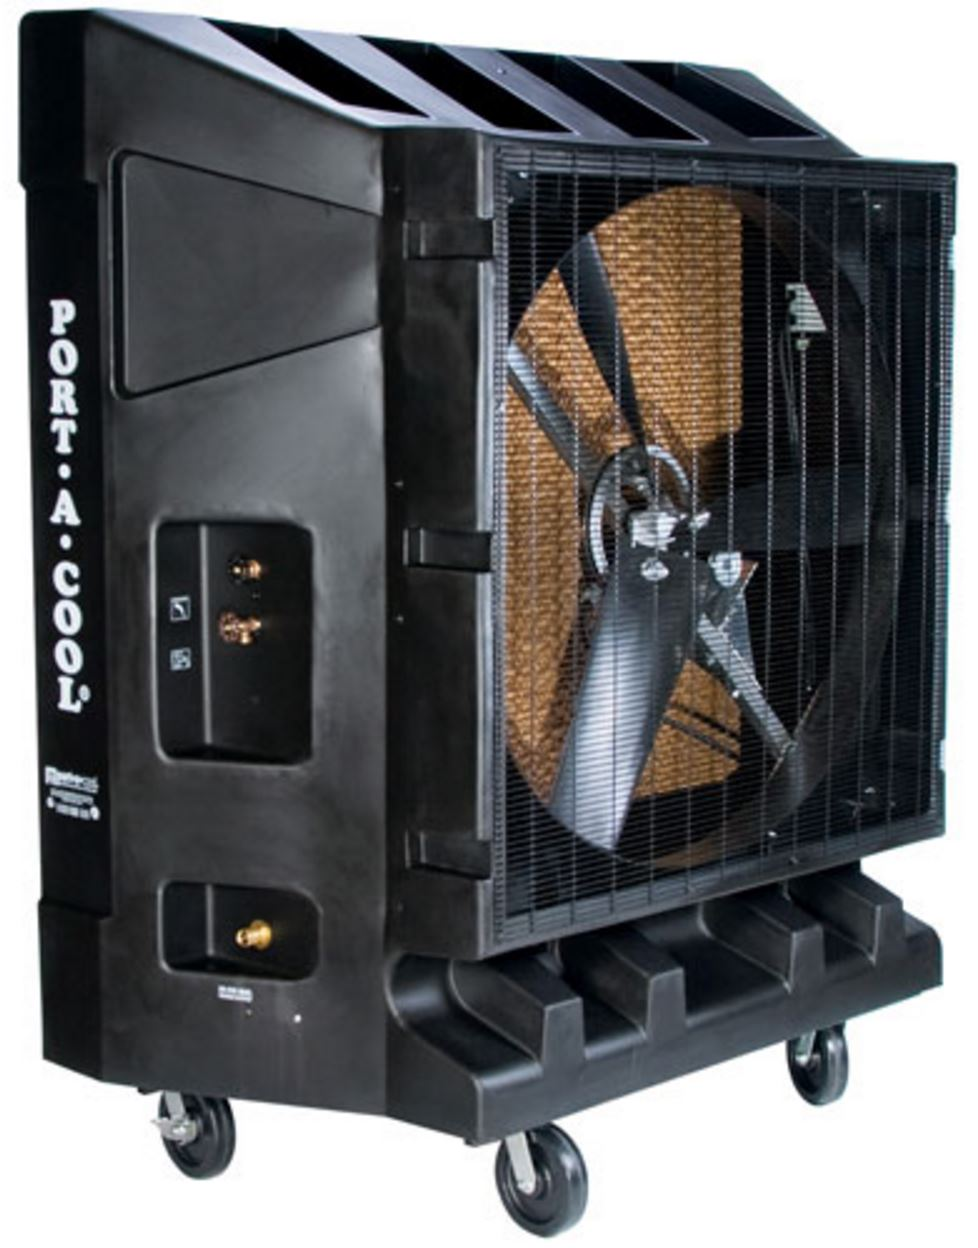 Industrial Air Coolers : Portable industrial air cooler inch single speed